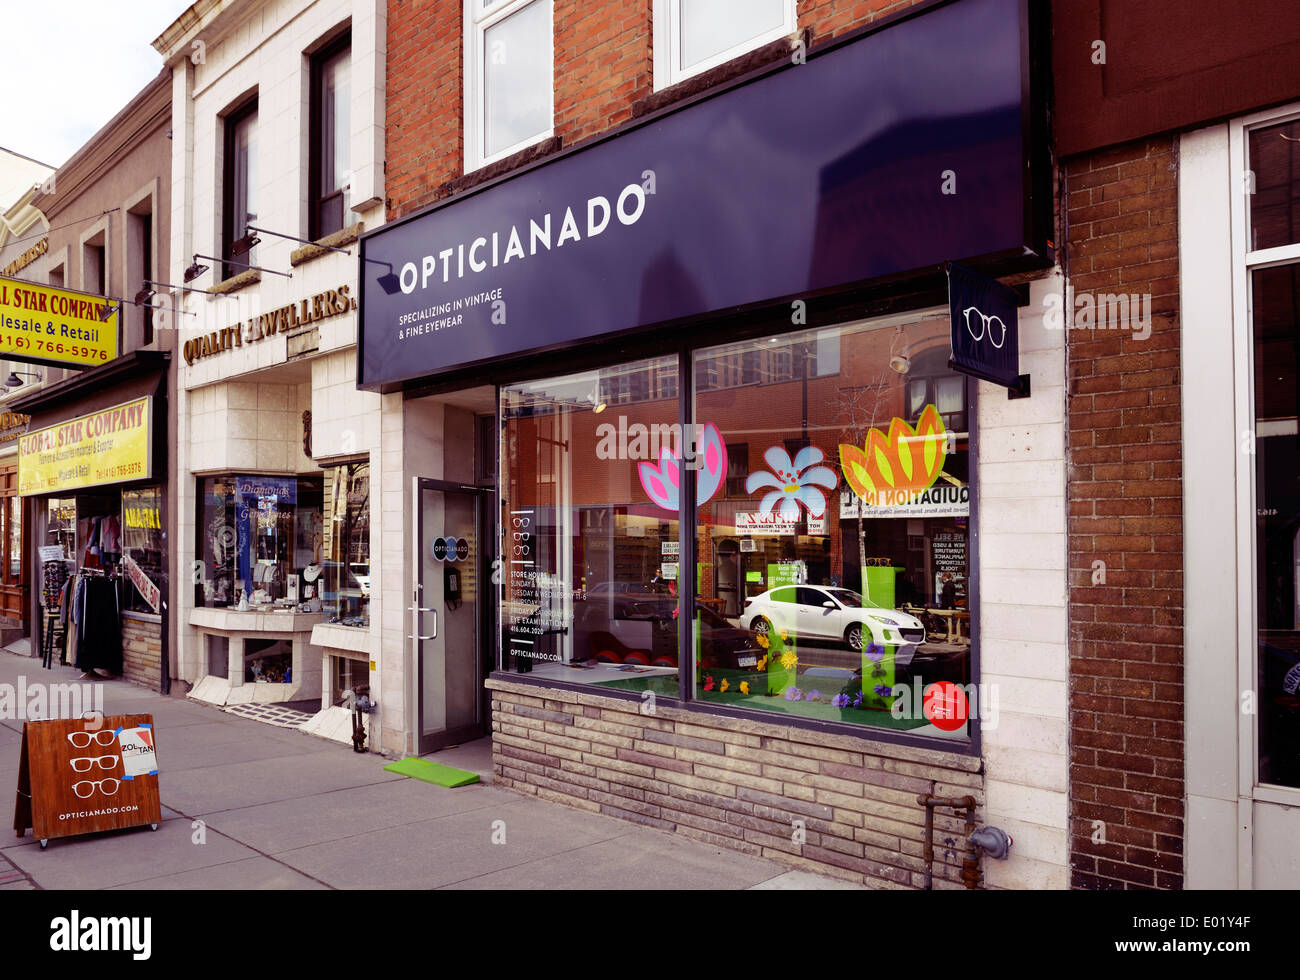 Opticianado vintage and fine eyewear store at the Junction neighbourhood in Toronto, Canada - Stock Image